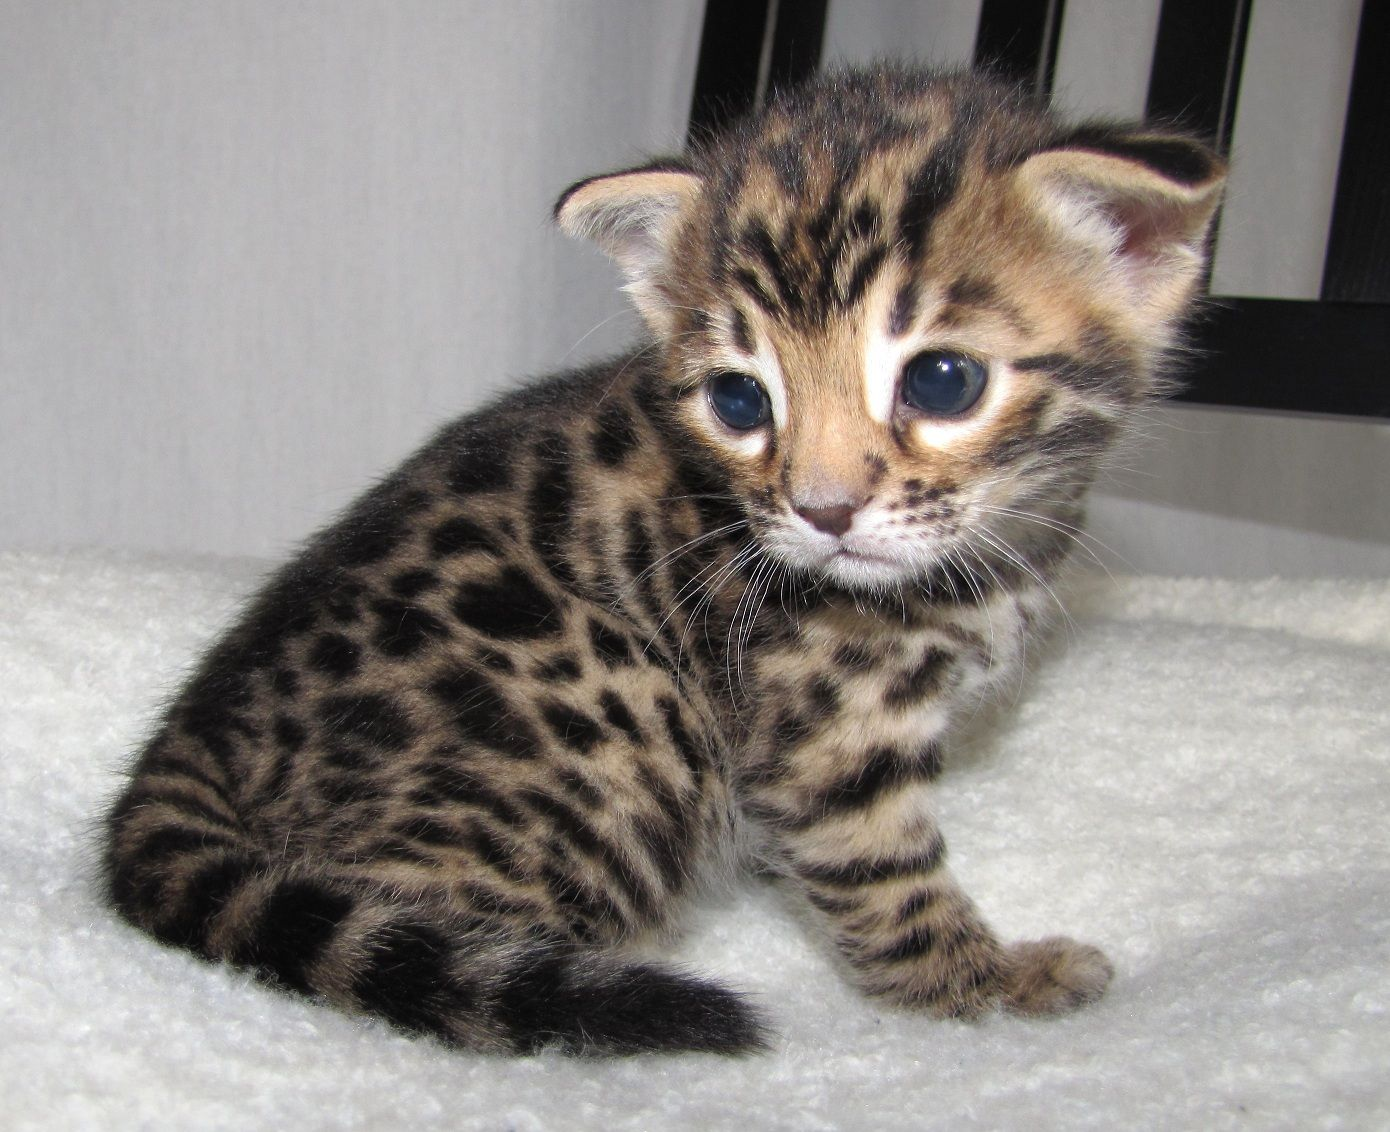 bengal kittens | baby-bengal-kittensbaby-bengal-cat-animal-care ...